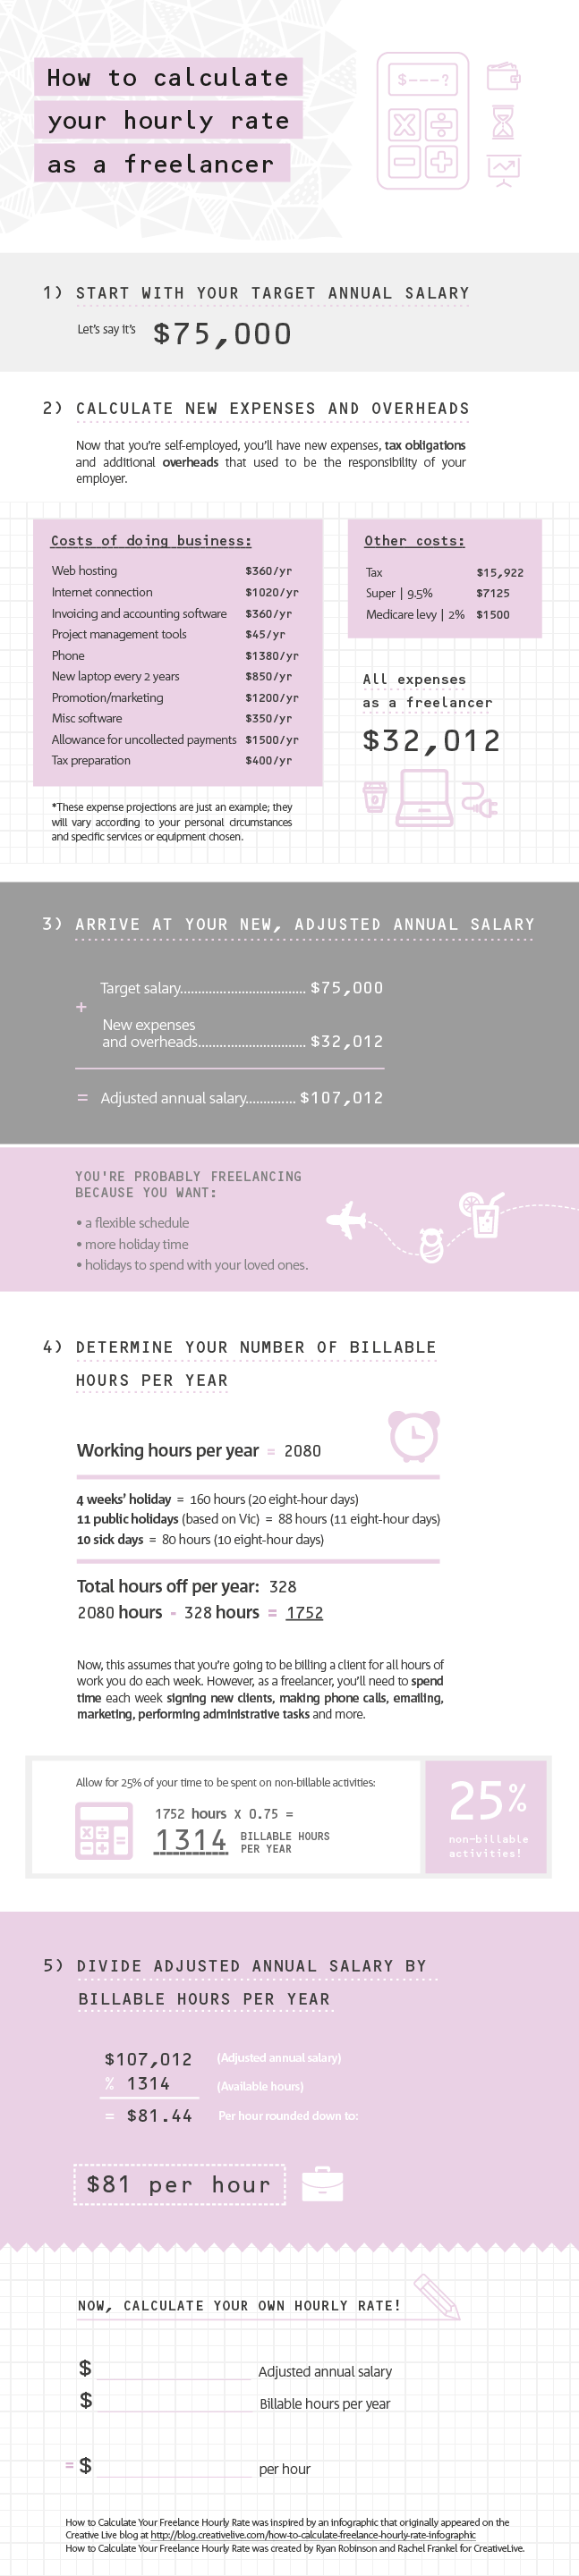 How To Calculate Your Hourly Rate As A Freelancer Your Guide To Brought To You By Nab If You Want To Enj Creative Business Plan Photography Jobs How To Plan